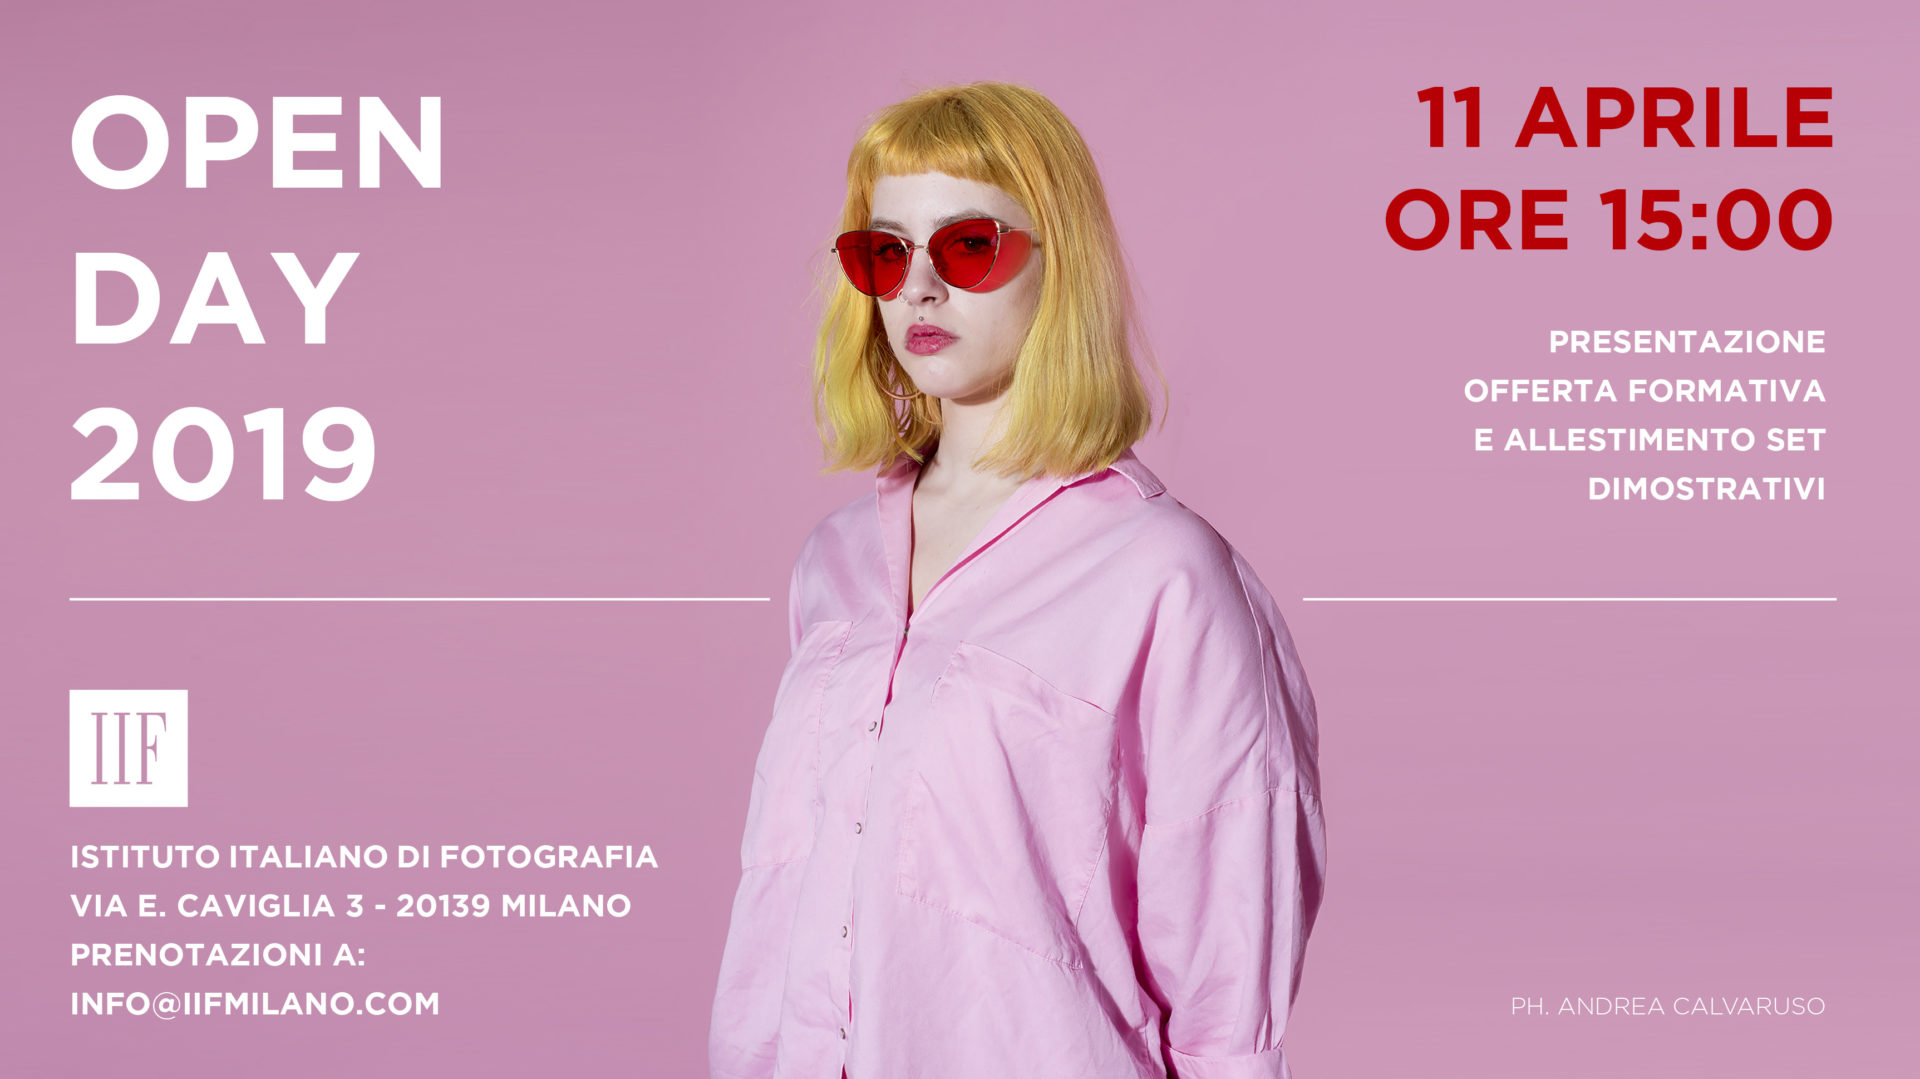 FB cover Open Day 11 aprile 2019